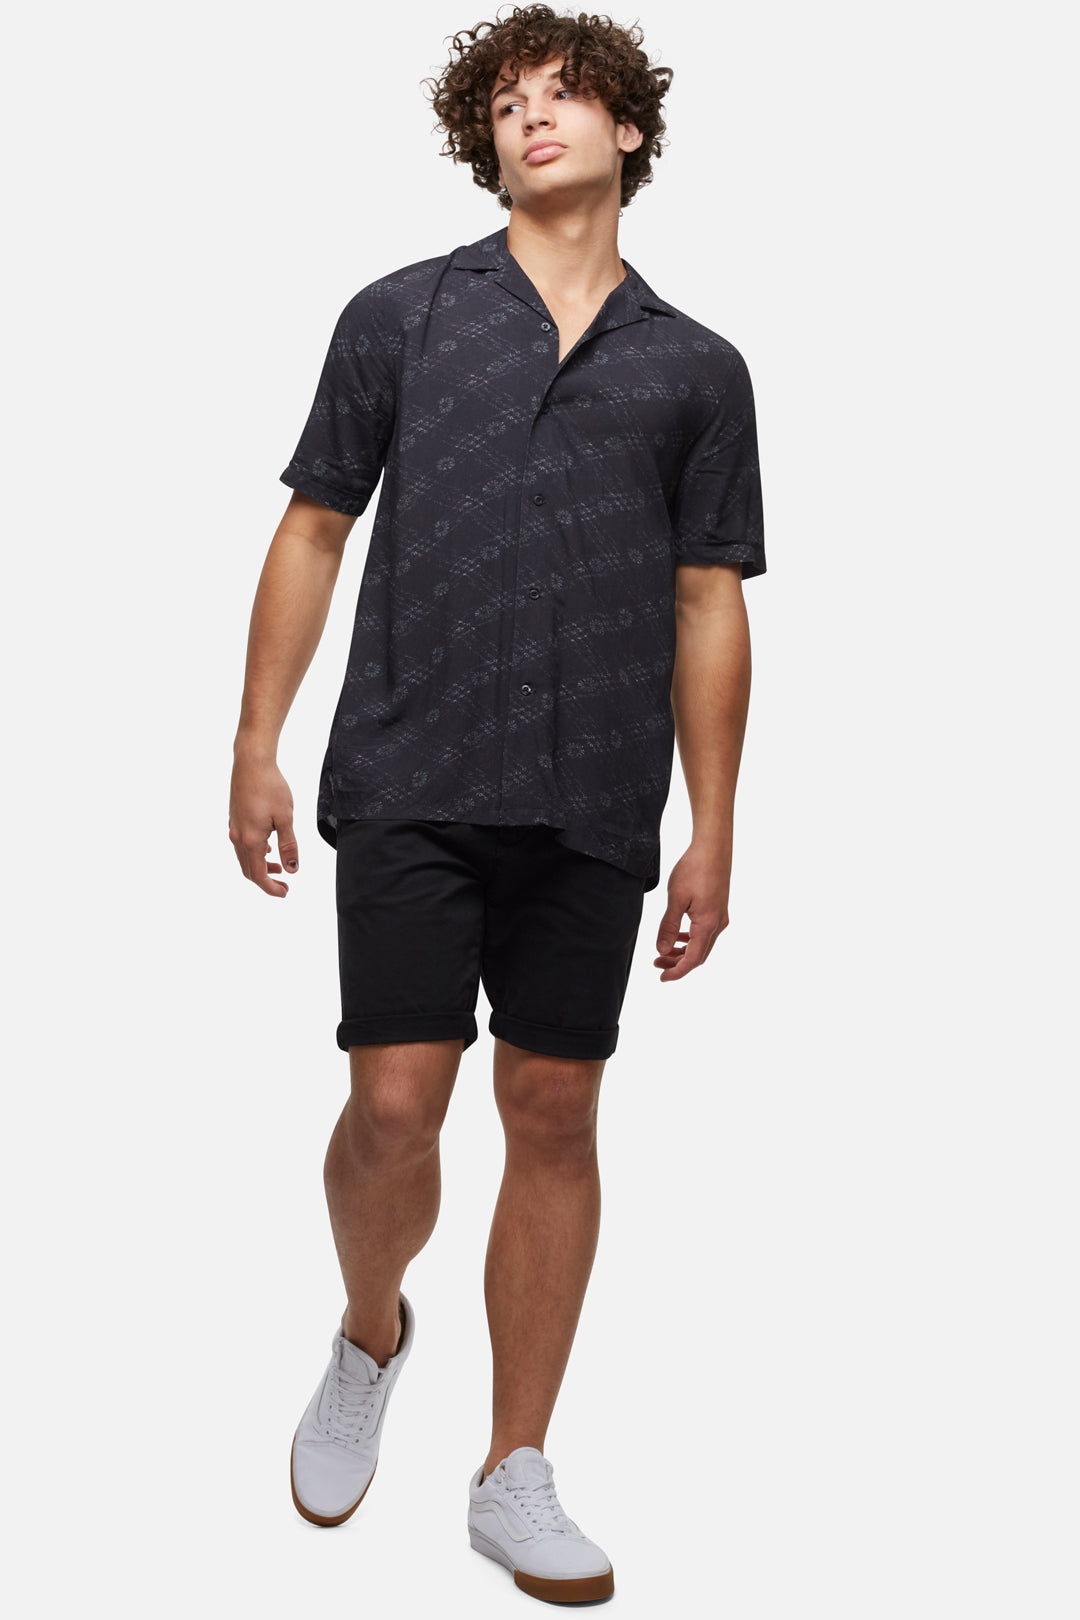 The Rinse Short - Black